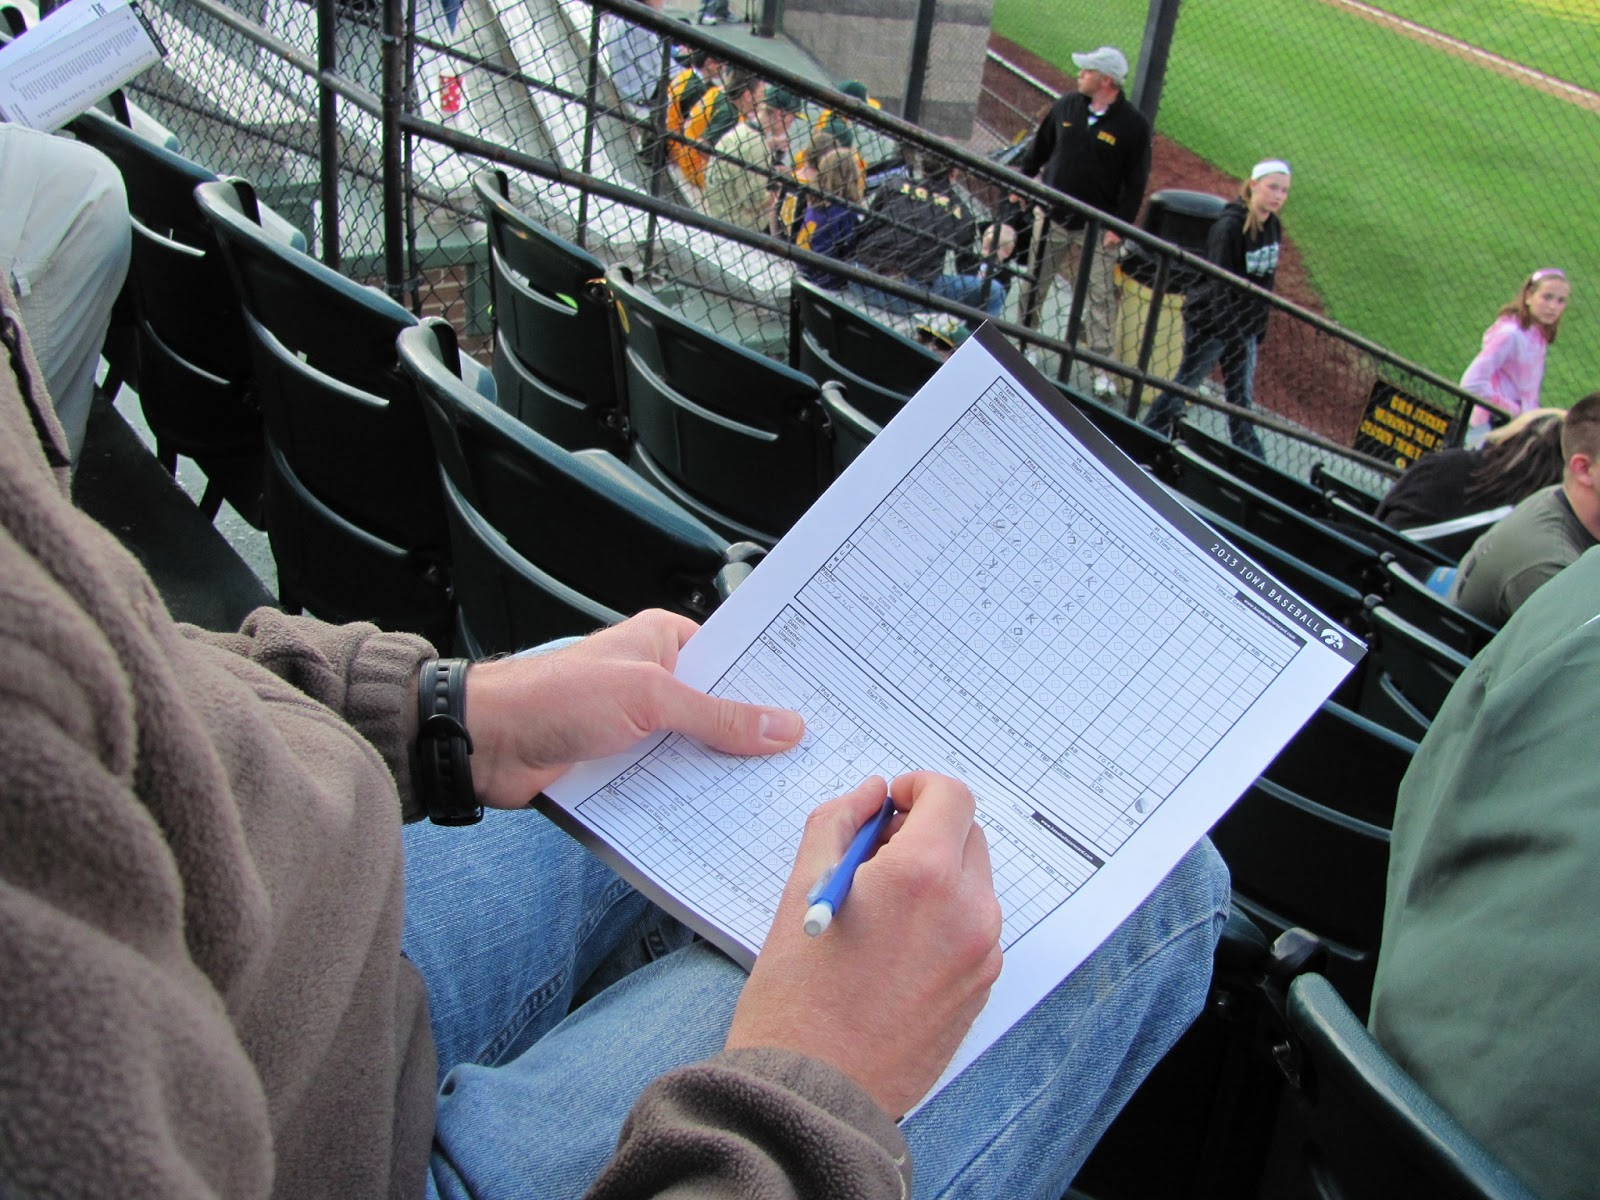 Cory keeps the scorecard at the Iowa baseball game